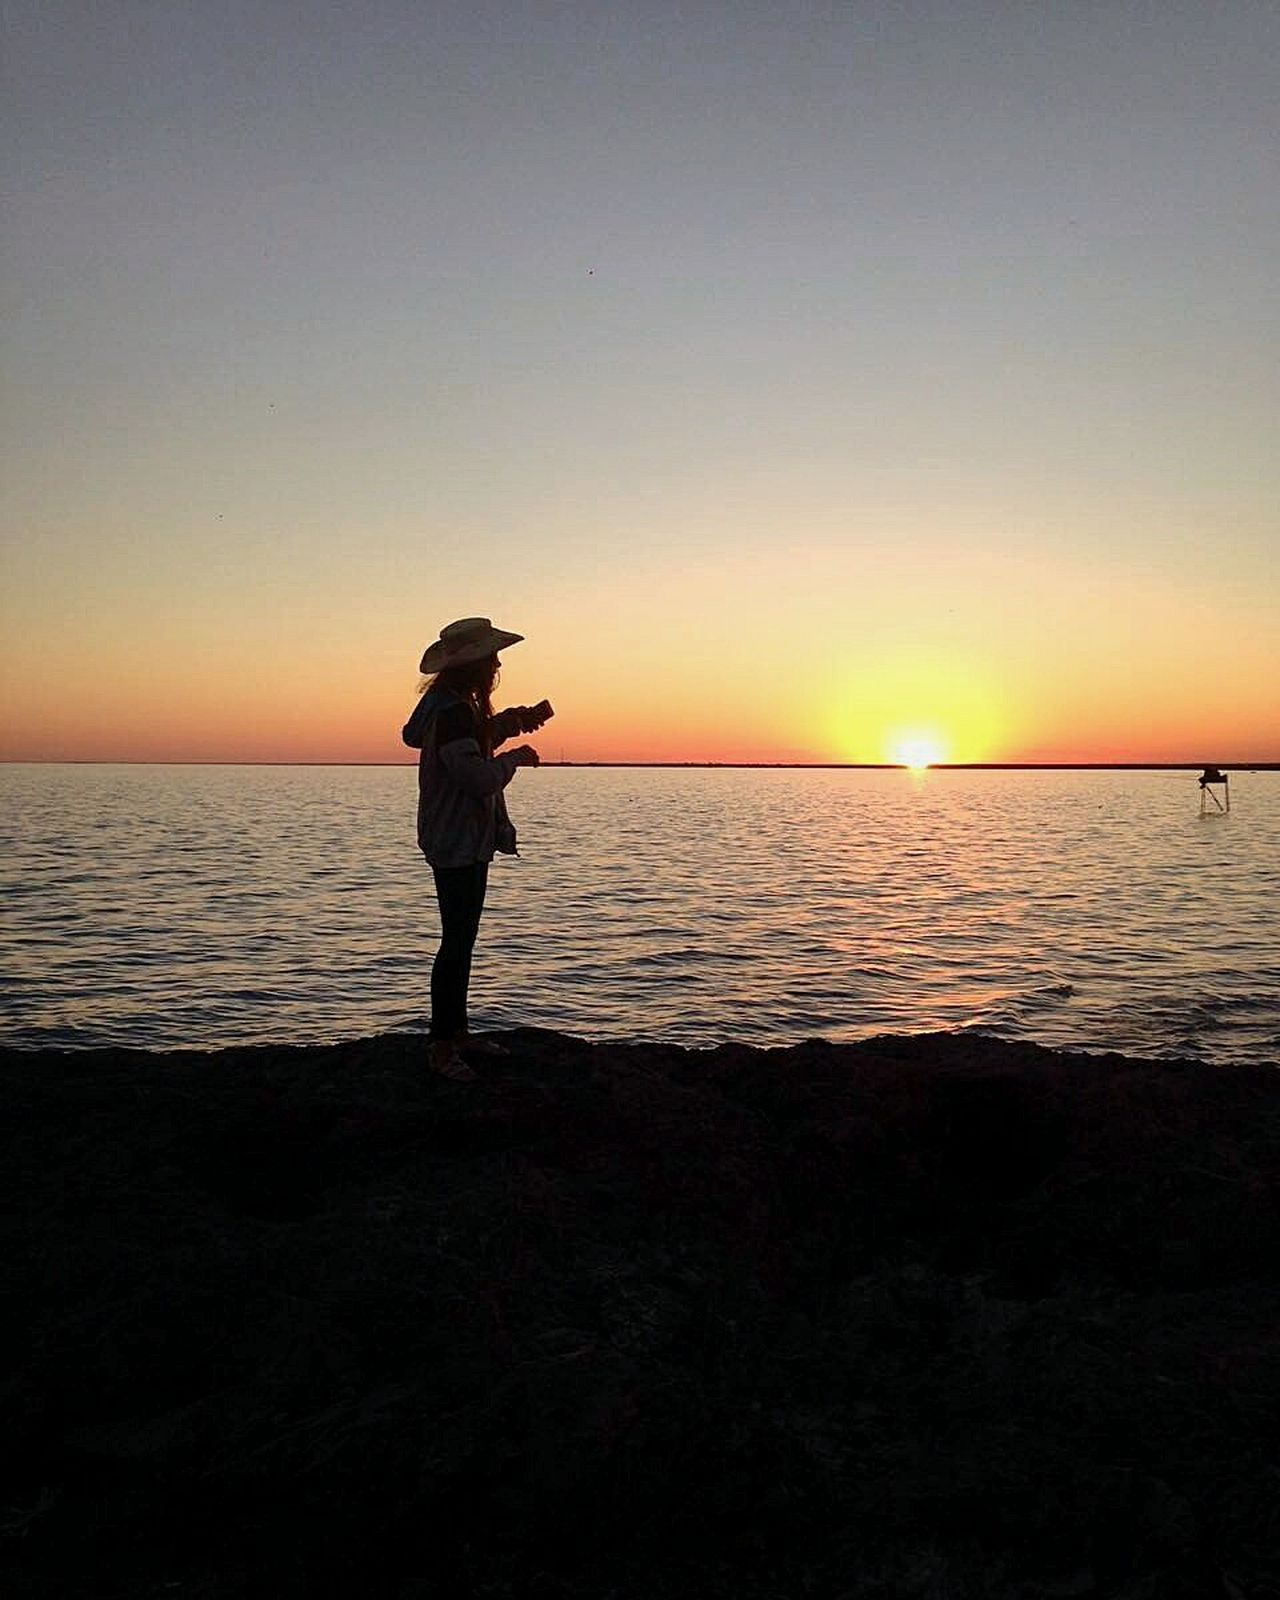 Kazakhstan lake Sunset One PersonAdult Tranquility Adults Only Beauty In Nature Reflection Beach Only Women Sea One Woman Only Silhouette Standing Sky Outdoors Discovery Night Full Length People Fishing Fisherman Fishing Time Nature Light Scenics